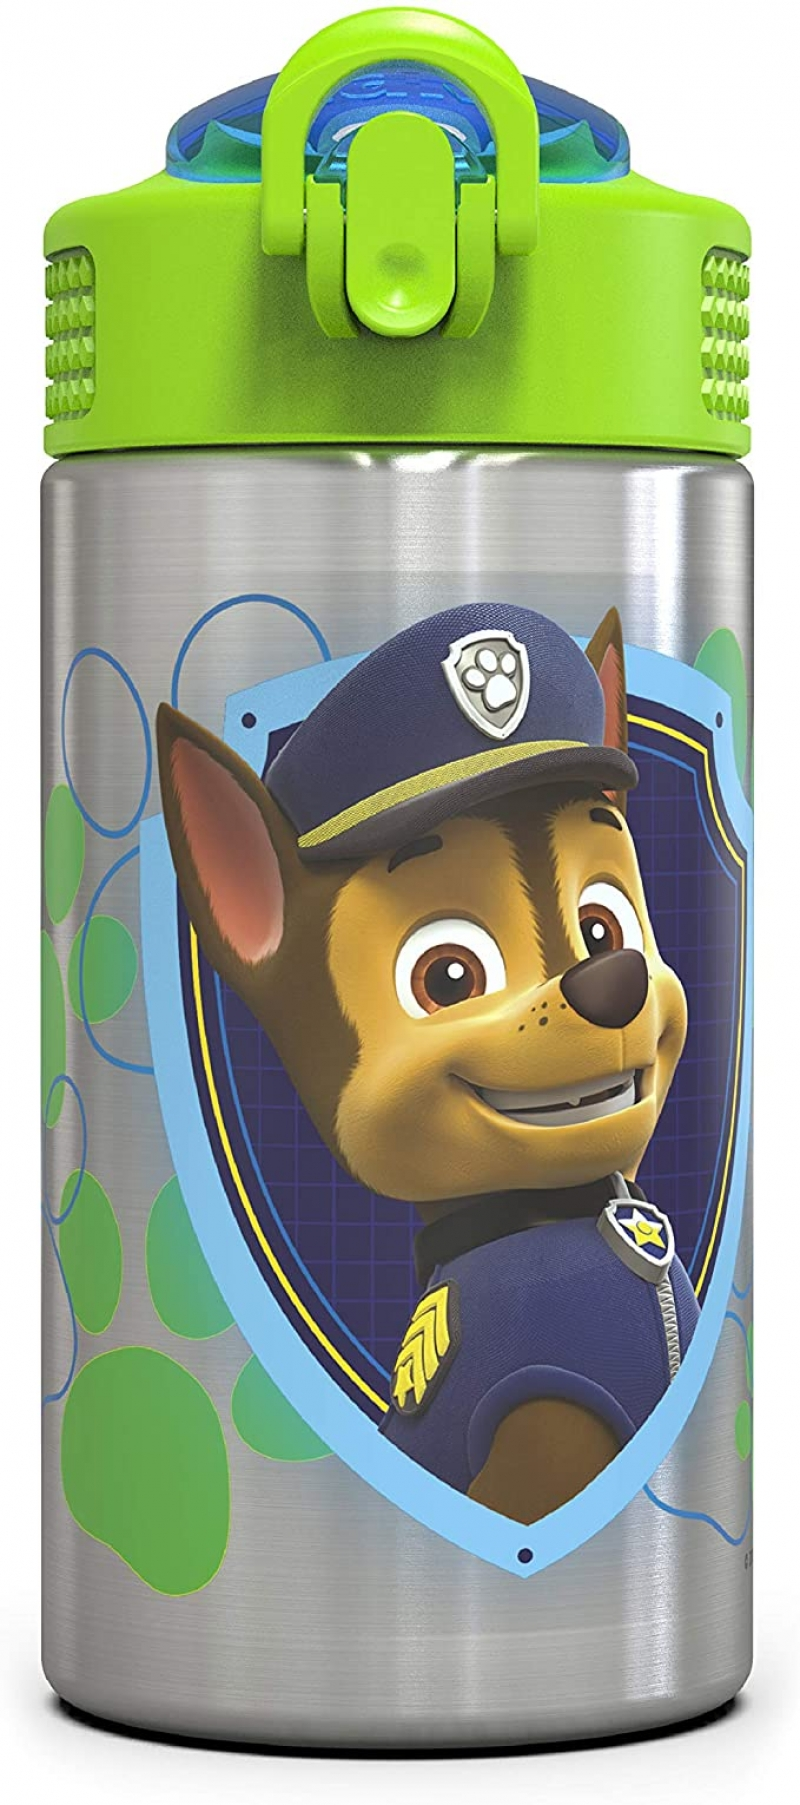 ihocon: Zak Designs Paw Patrol 15.5oz Stainless Steel Kids Water Bottle with Flip-up Straw Spout 不銹鋼兒童吸管水壺